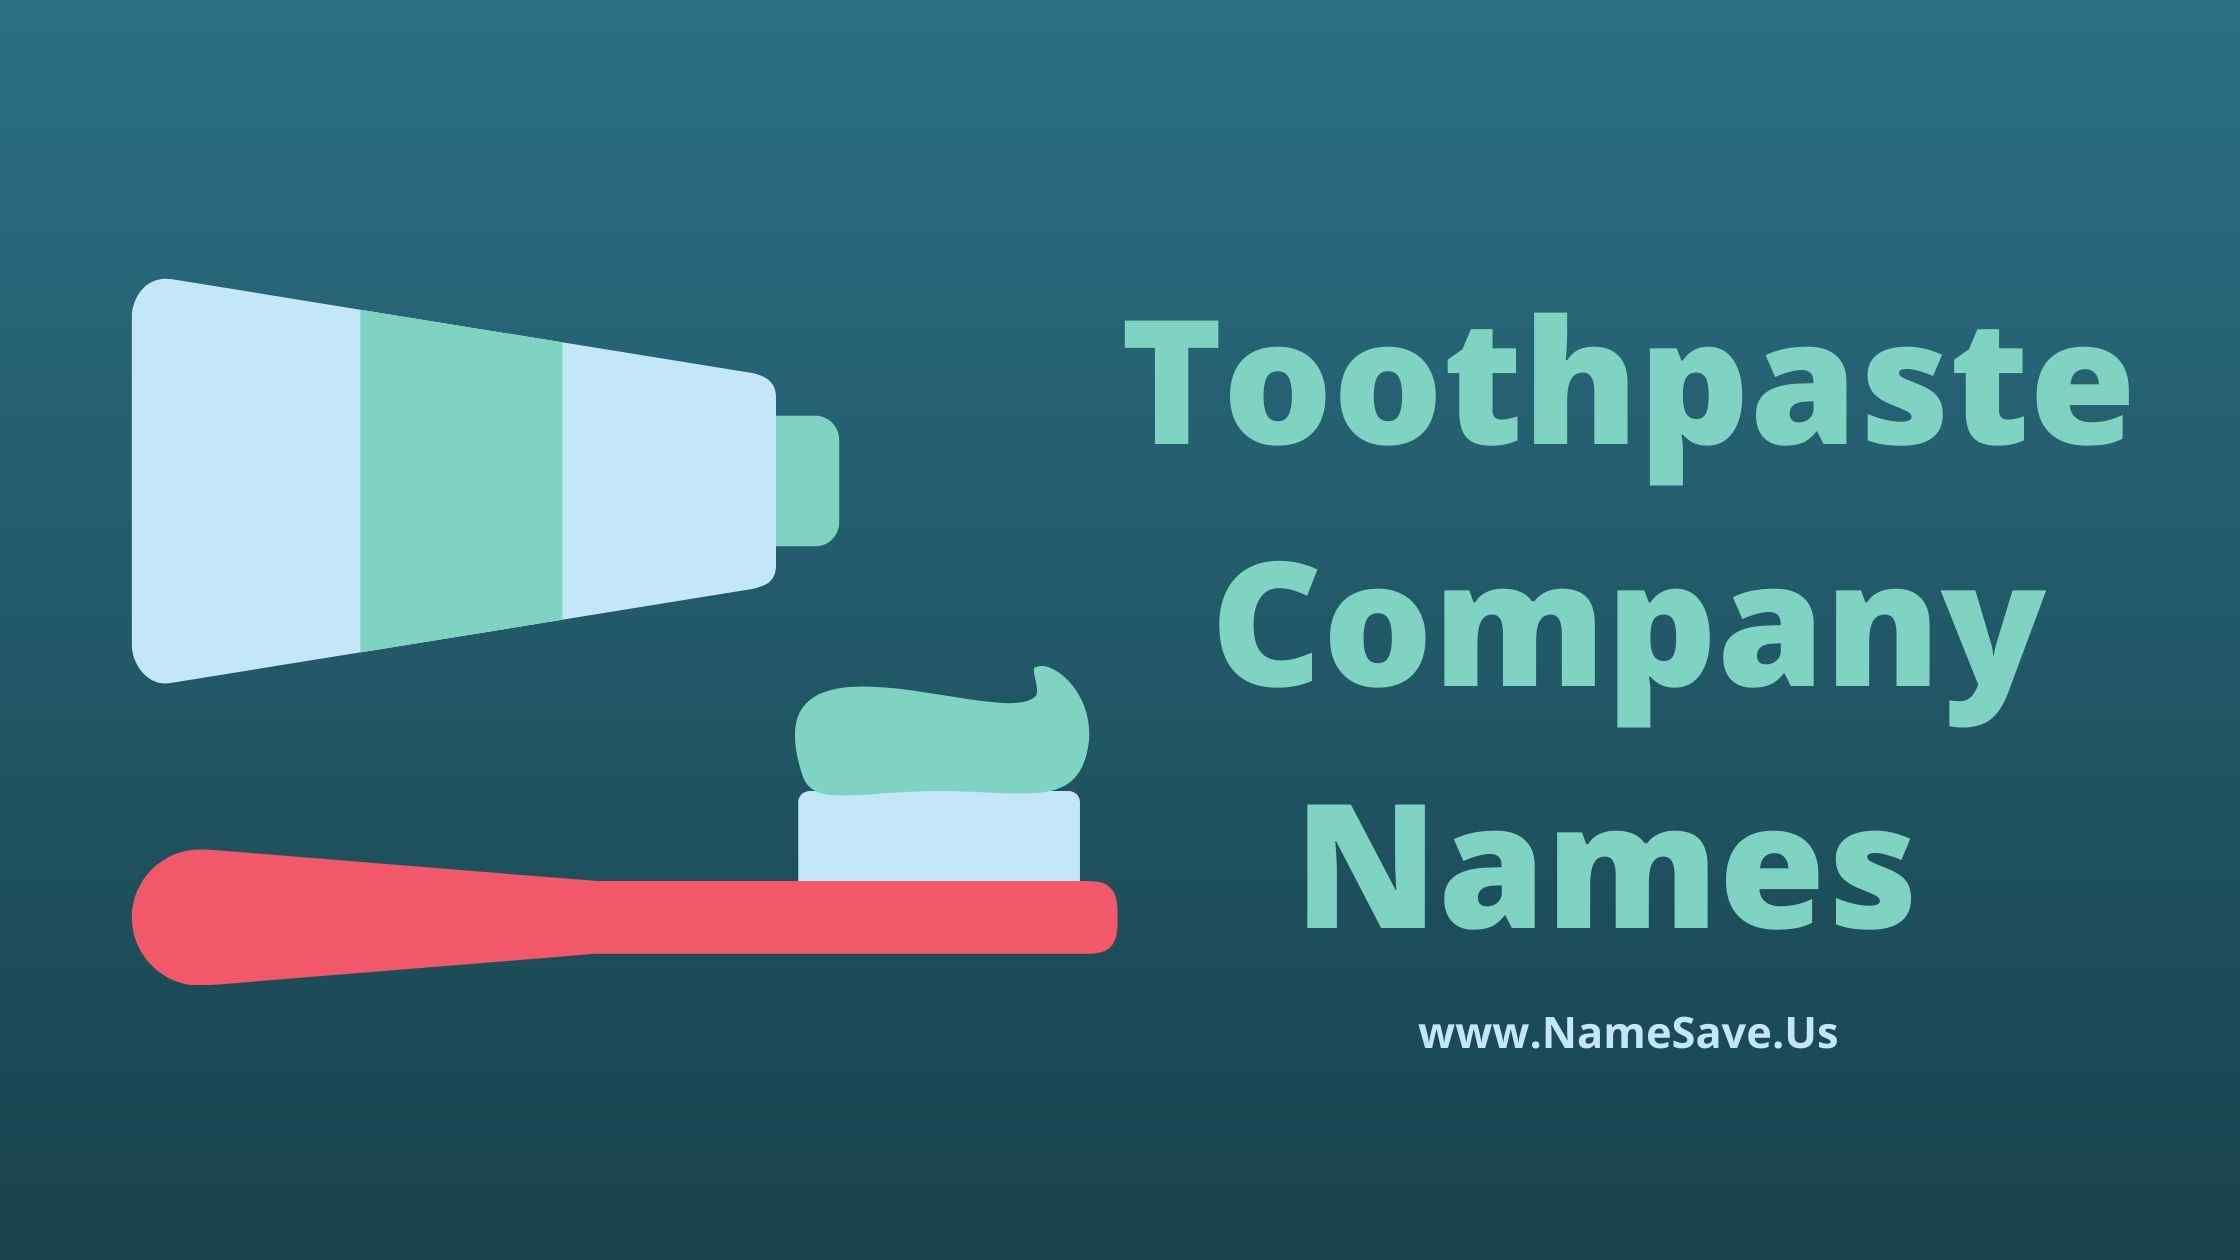 Toothpaste Company Names